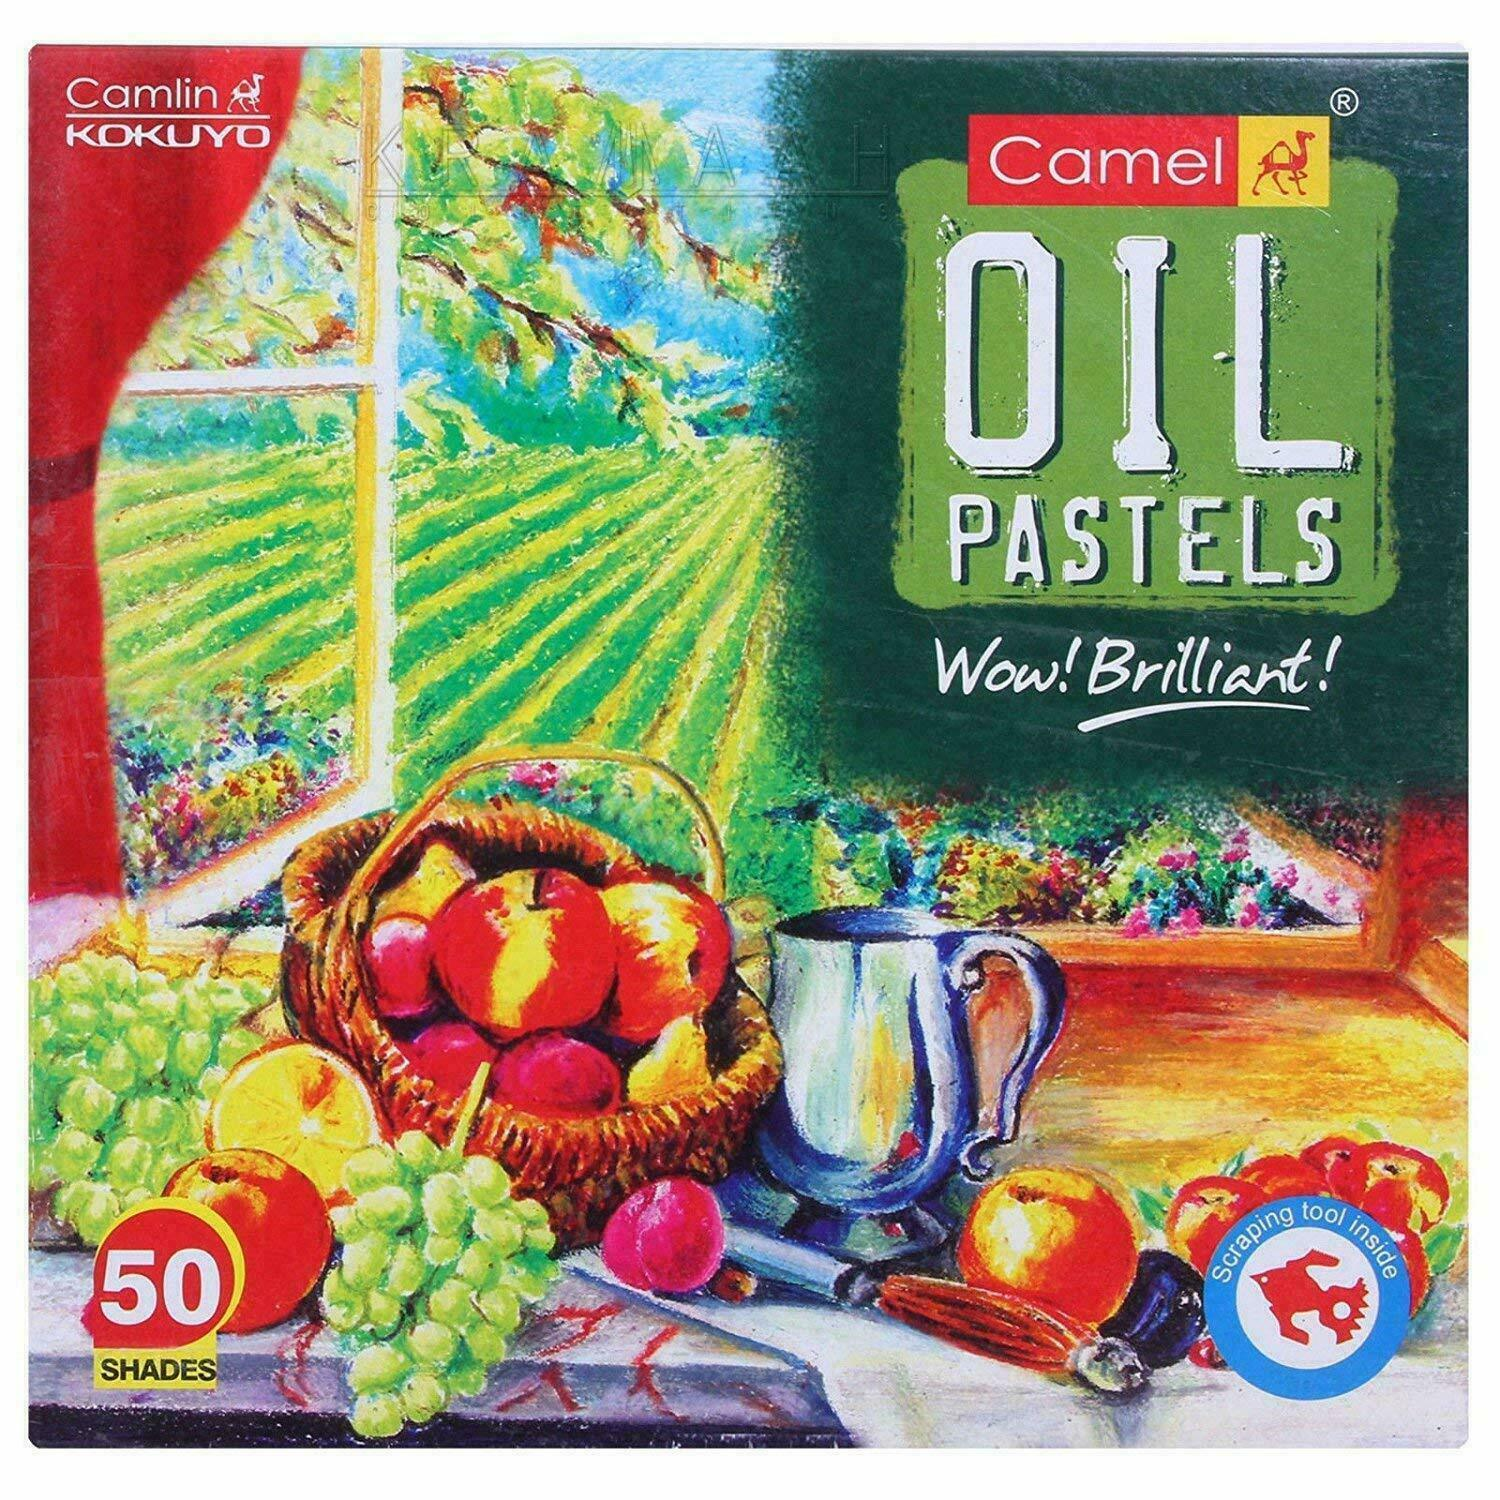 Camlin Kokuyo Oil Pastel (50 Shades)- 50 assorted shades + 1 scraping tool - CA